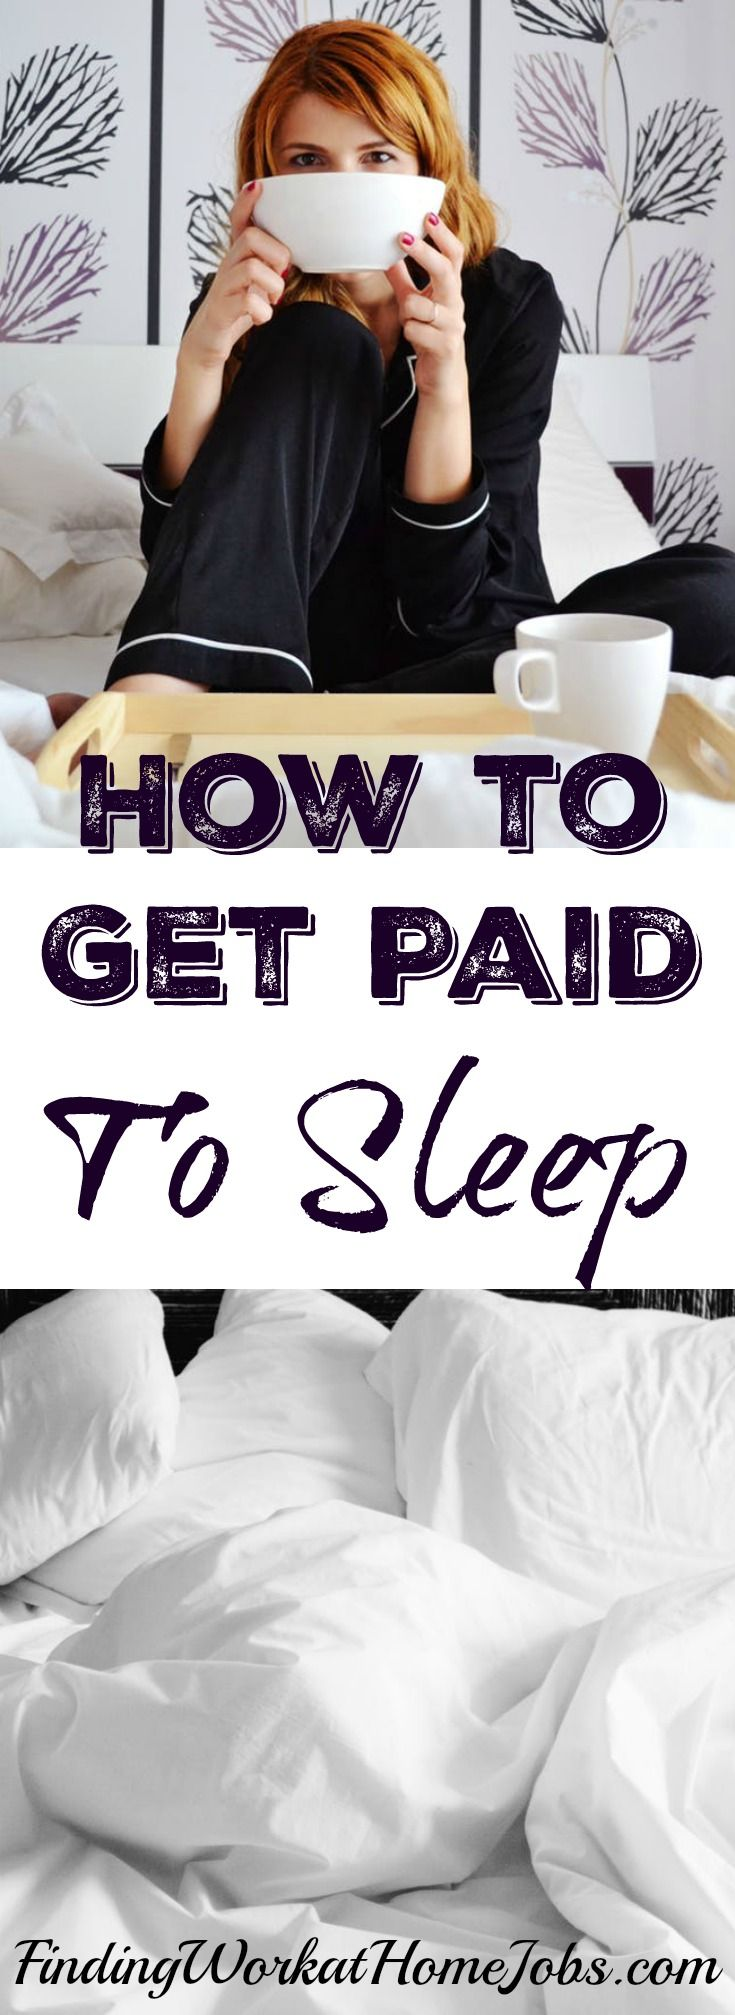 A dream job- pun intended.  Would love to get paid to sleep!